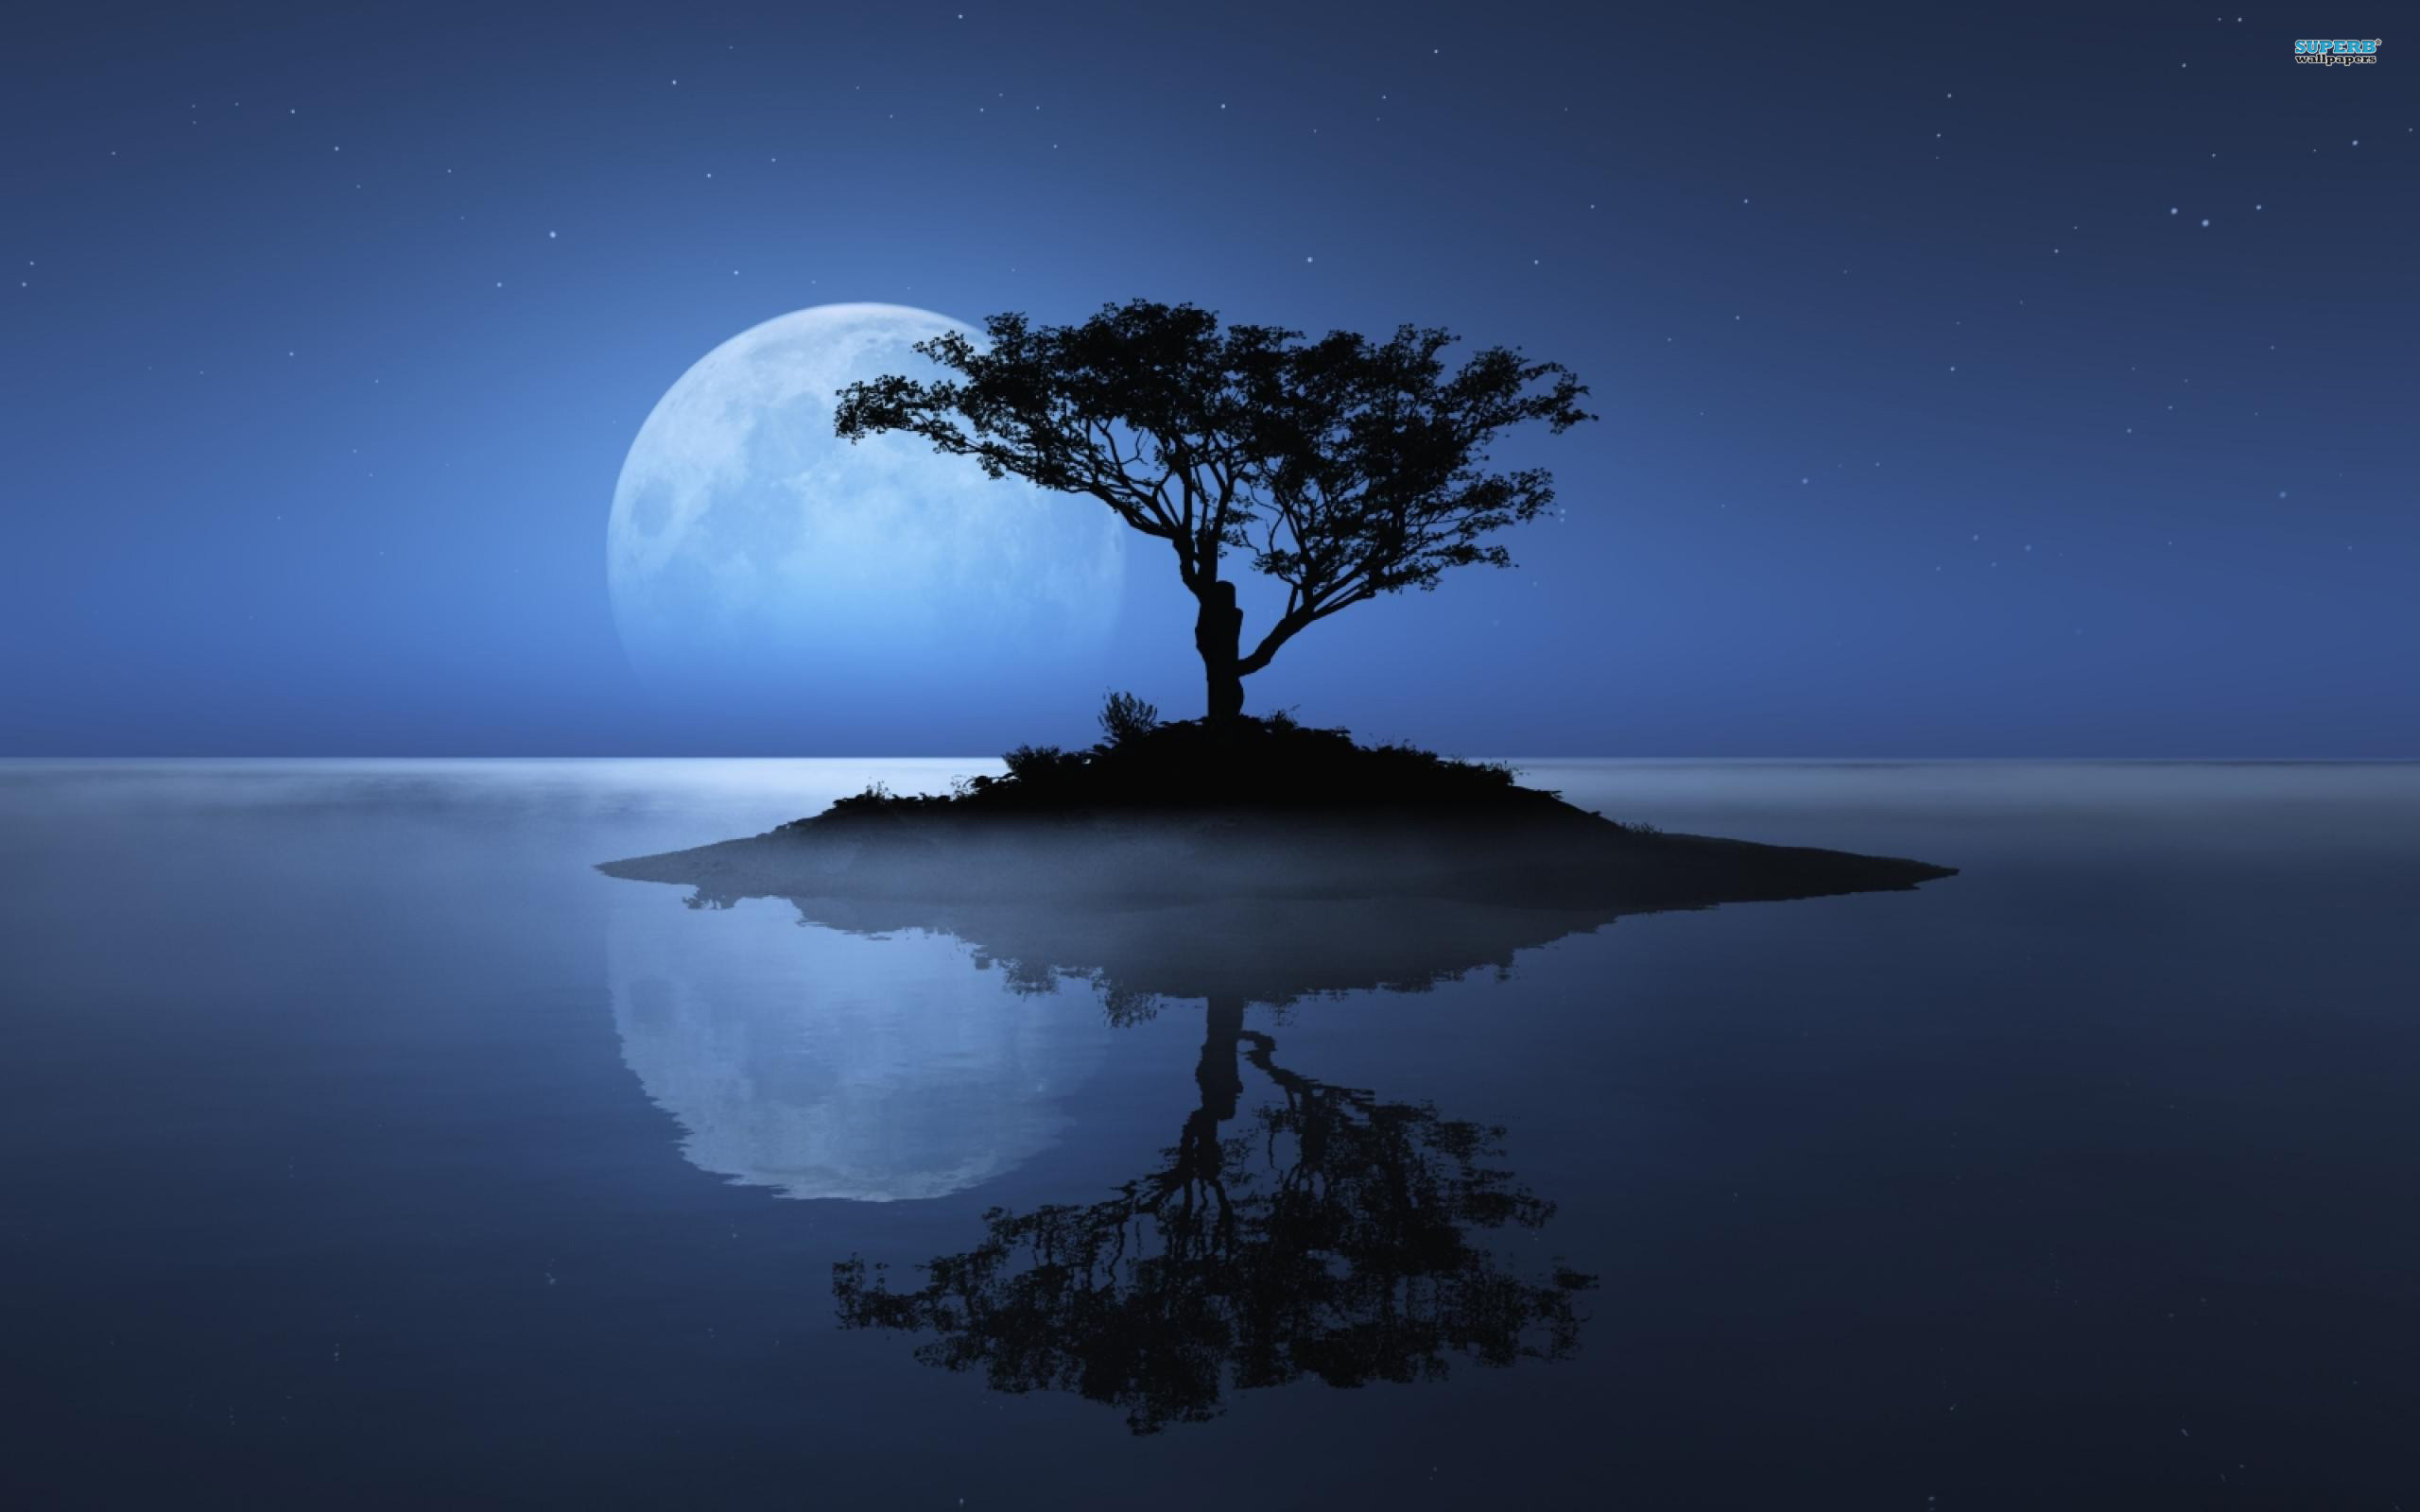 2560x1600 moon shadow on river wallpaper download